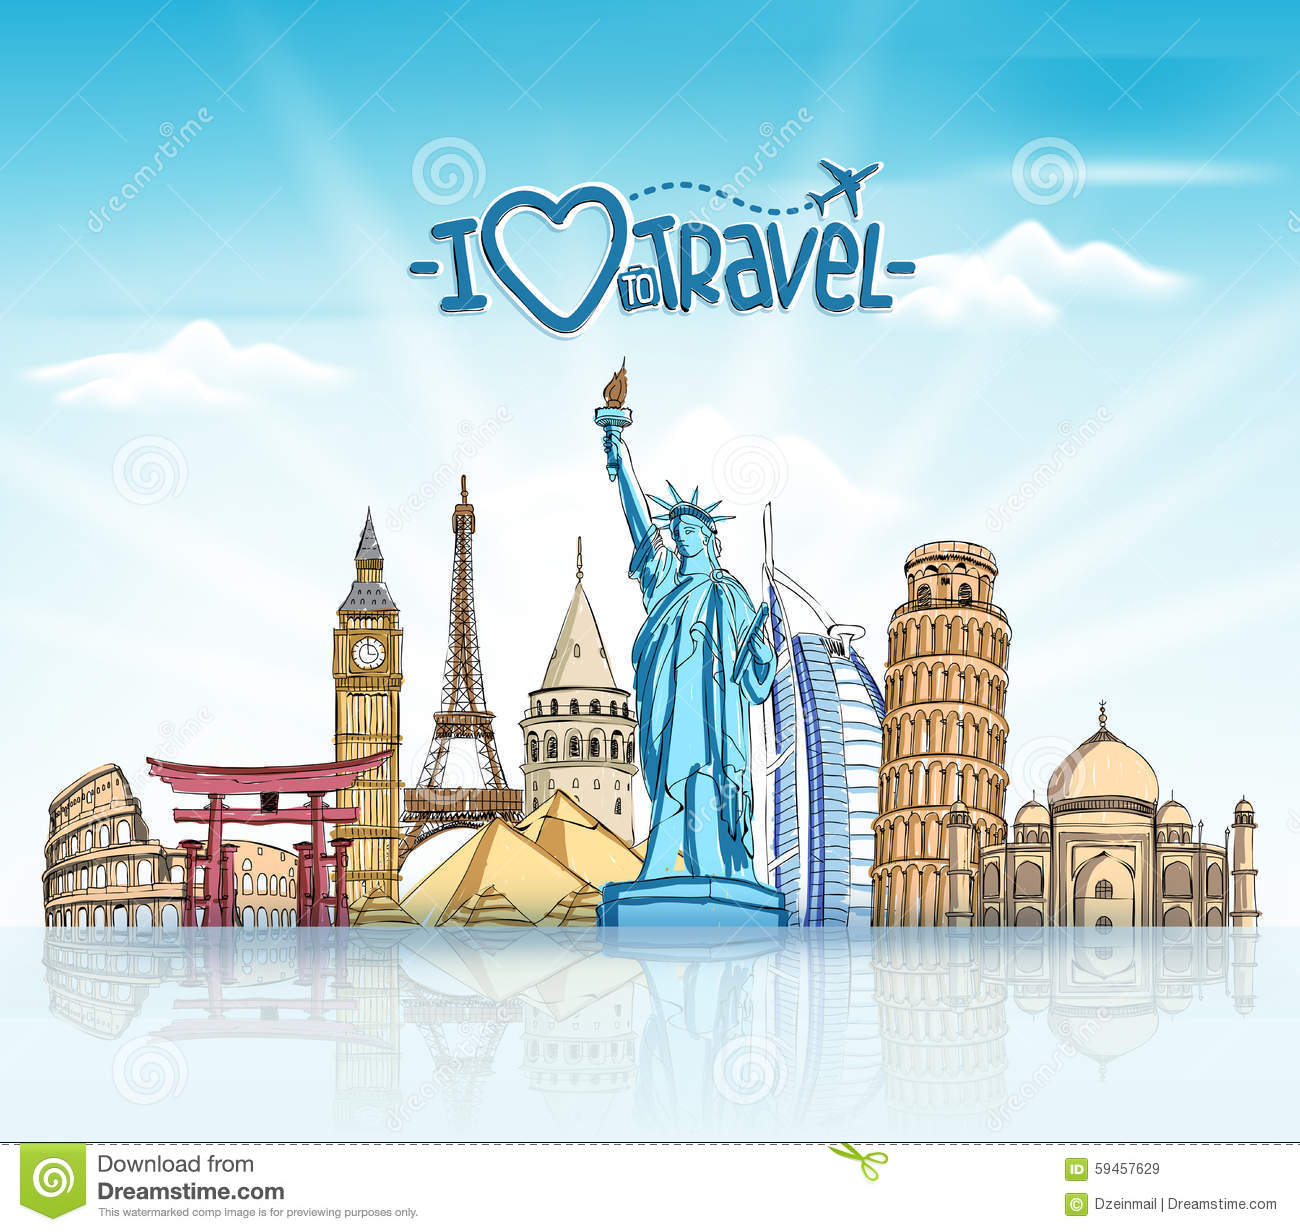 travel-tourism-background-famous-world-landmarks-d-realistic-sketch-drawing-elements-vector-illustration-59457629.jpg